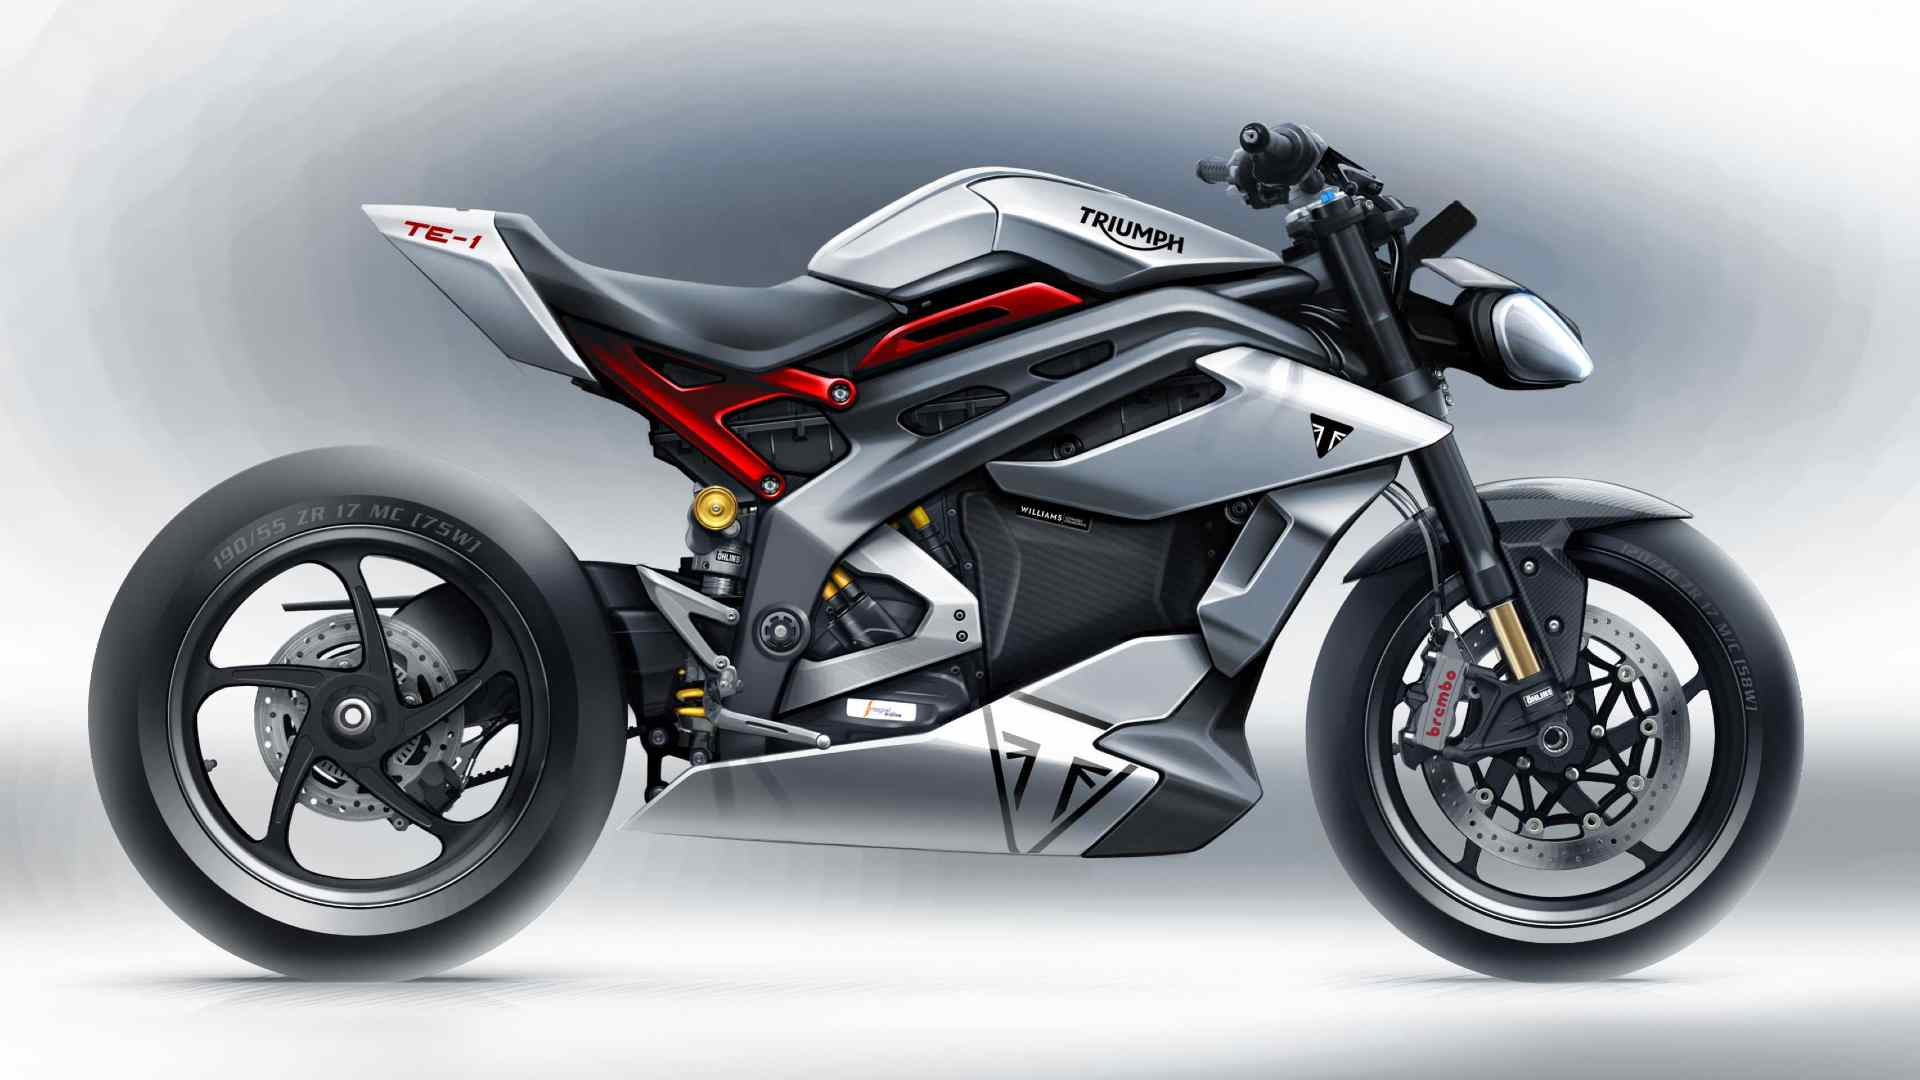 Triumph Project TE-1 electric superbike previewed, electric powertrain revealed